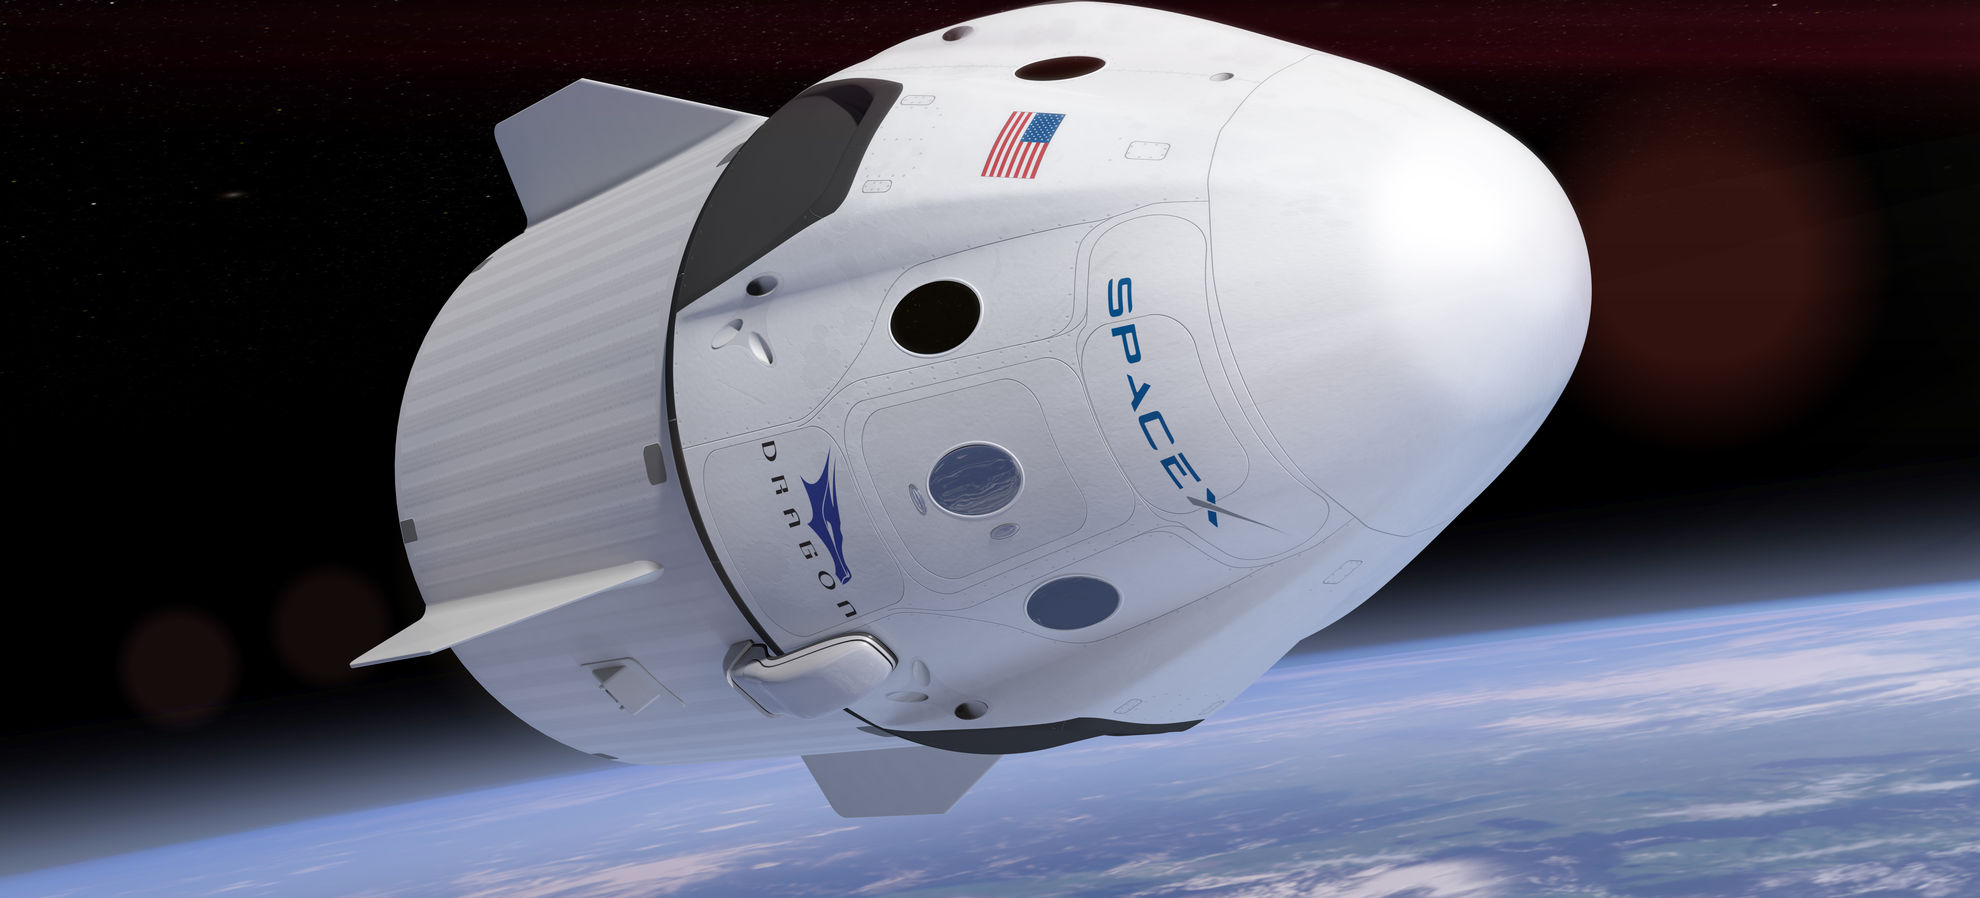 Elon Musk Announces Daring SpaceX Dragon Flight Beyond Moon with 2 Private Astronauts in 2018